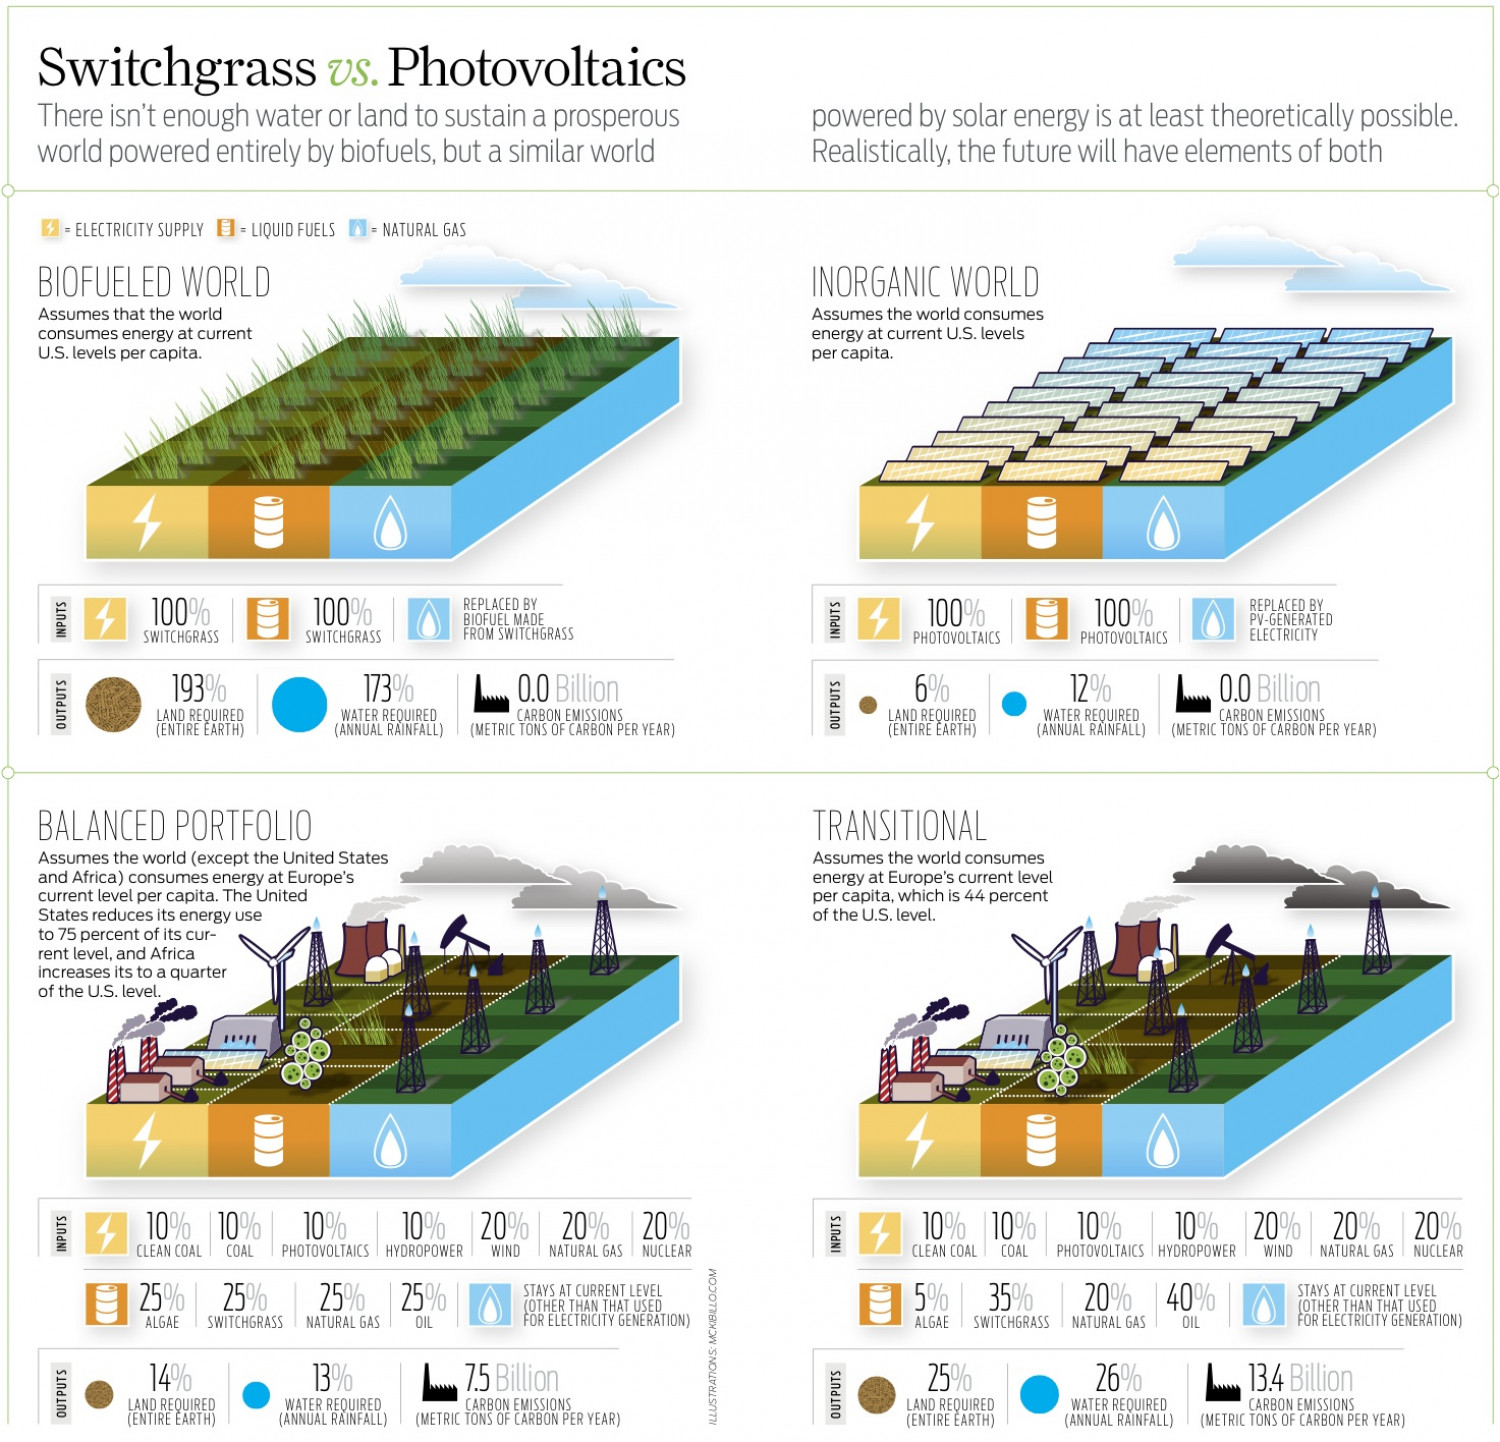 Switchgrass vs. Photovoltaics Infographic